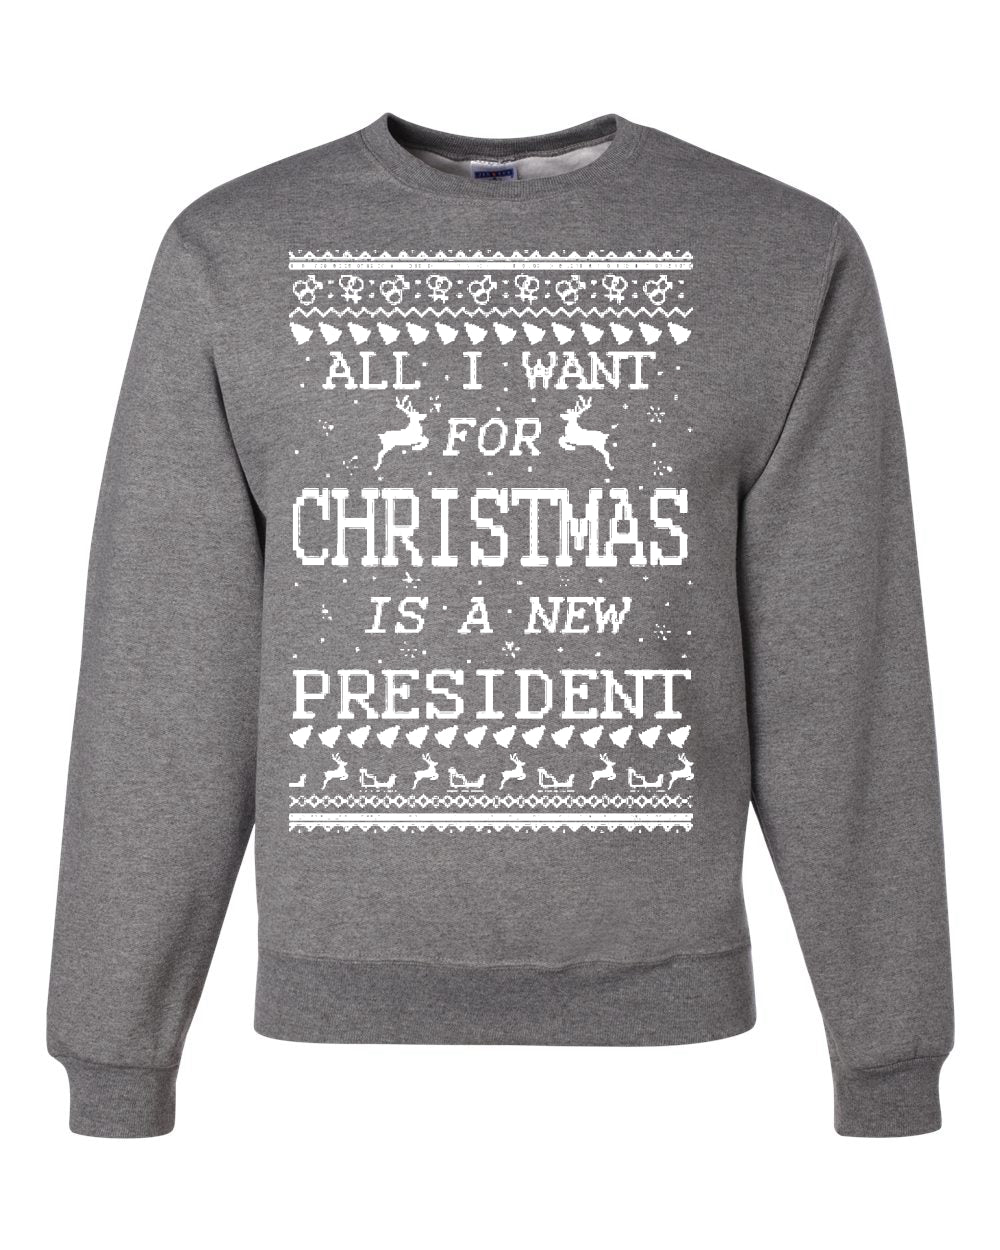 All I Want for Christmas is a New President Christmas Unisex Crewneck Graphic Sweatshirt